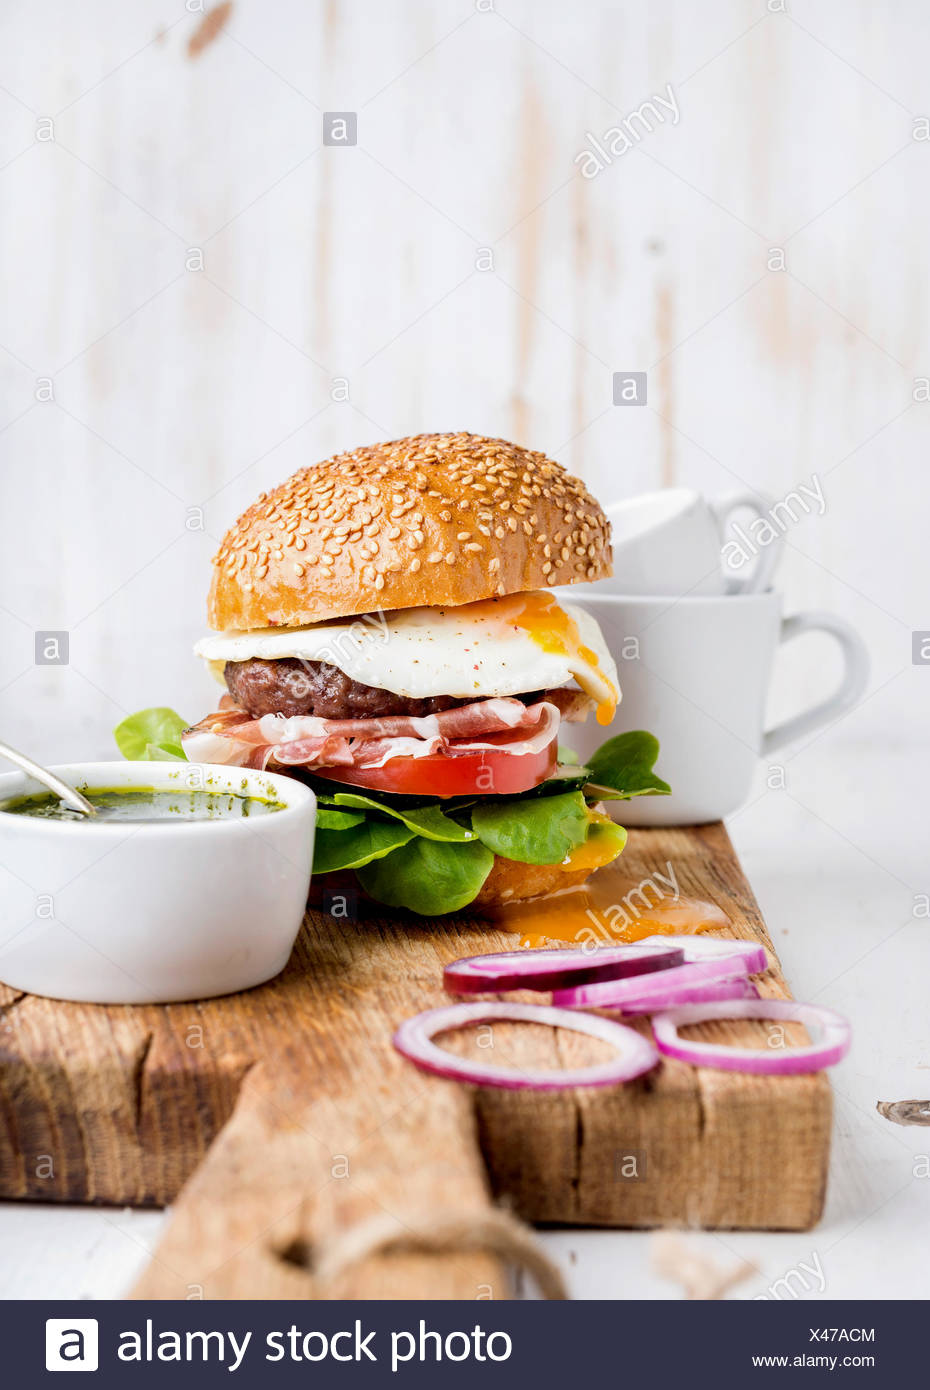 Fresh homemade burger with beef cutlet, egg, prosciutto and vegetables on wooden serving board with onion rings and pesto sauce - Stock Image